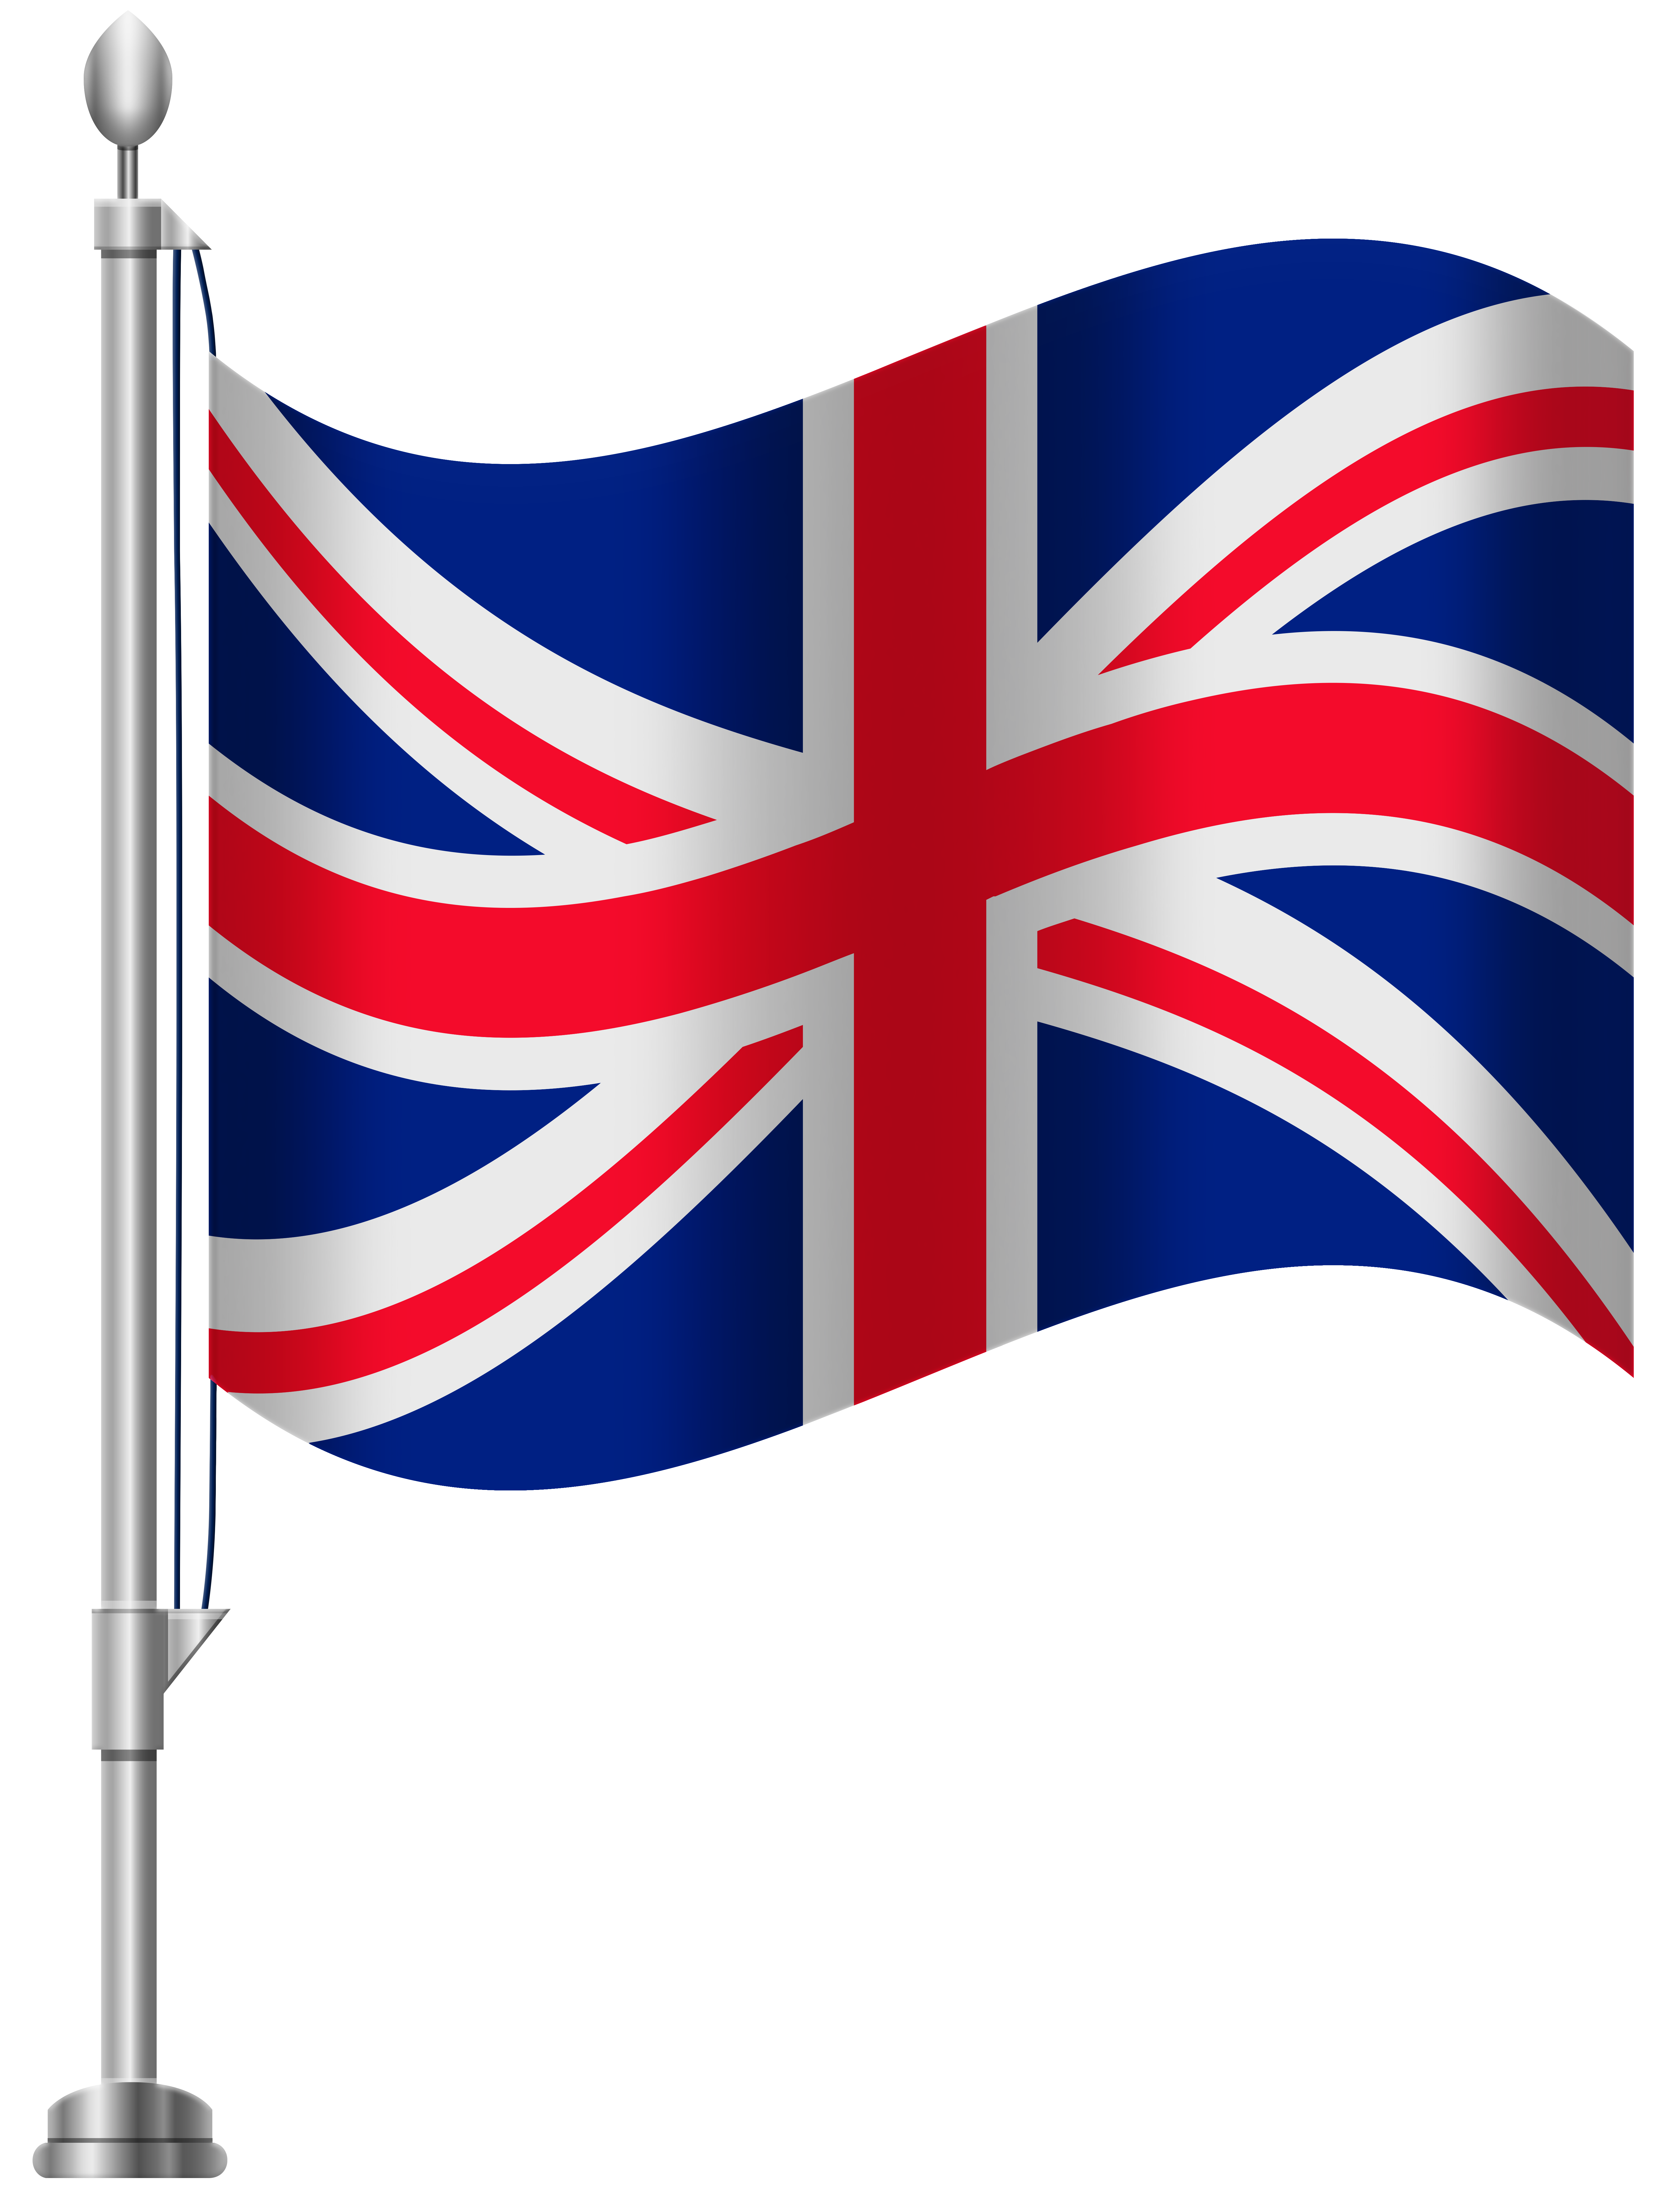 British flag clipart at free for - Uk flag images free ...